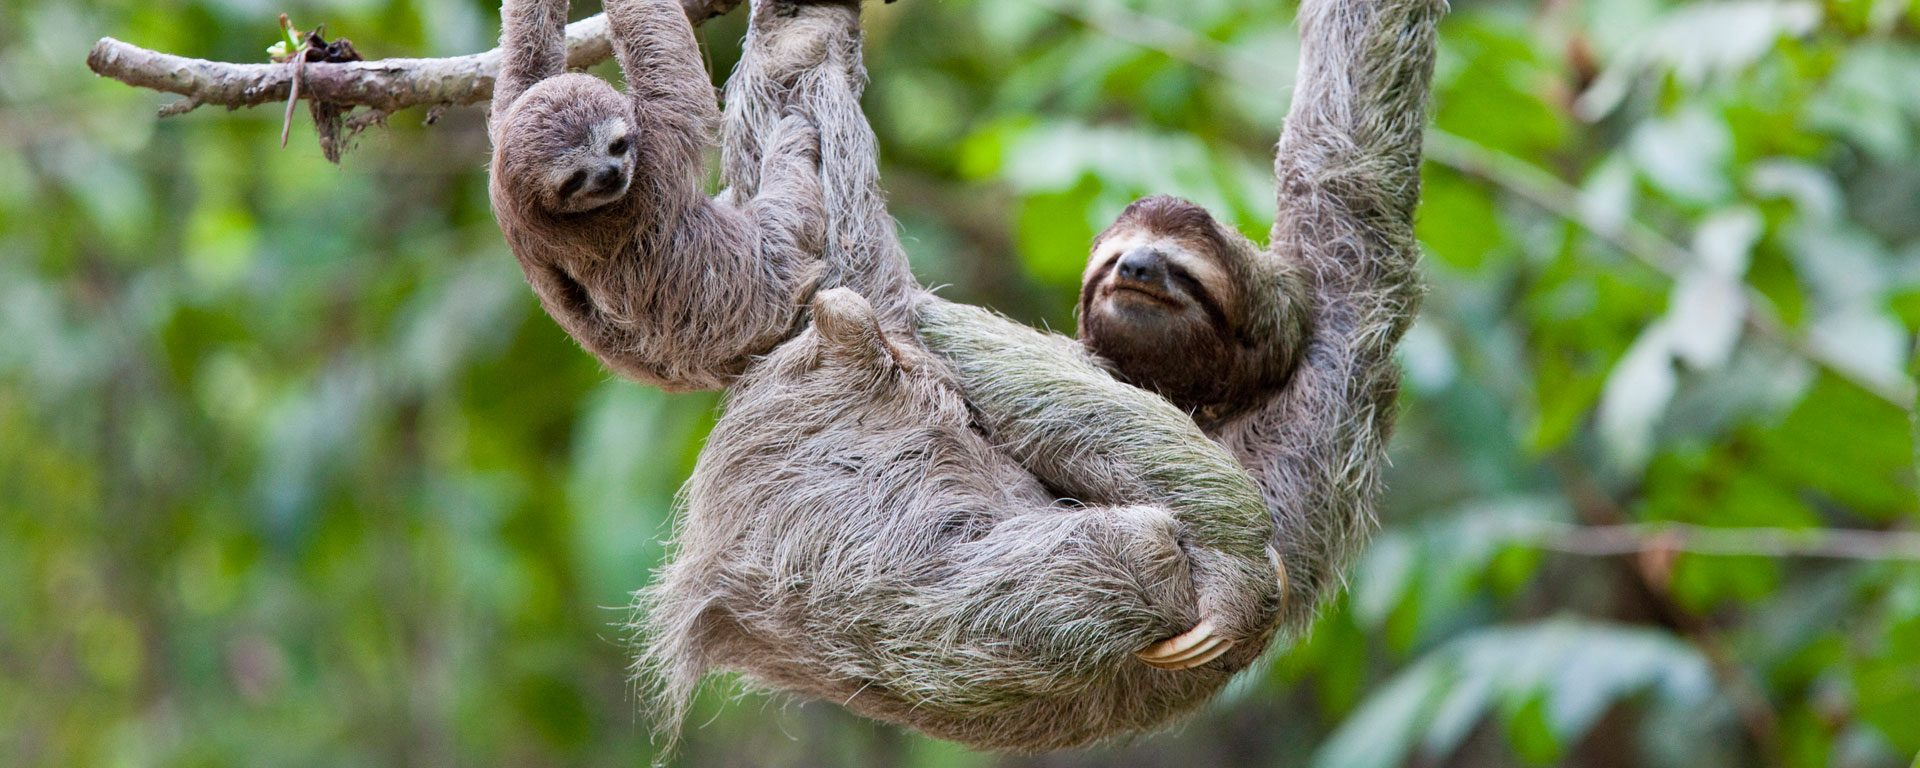 Mother and baby sloths hang on branch in the jungle of Corcovado National Park, Costa Rica